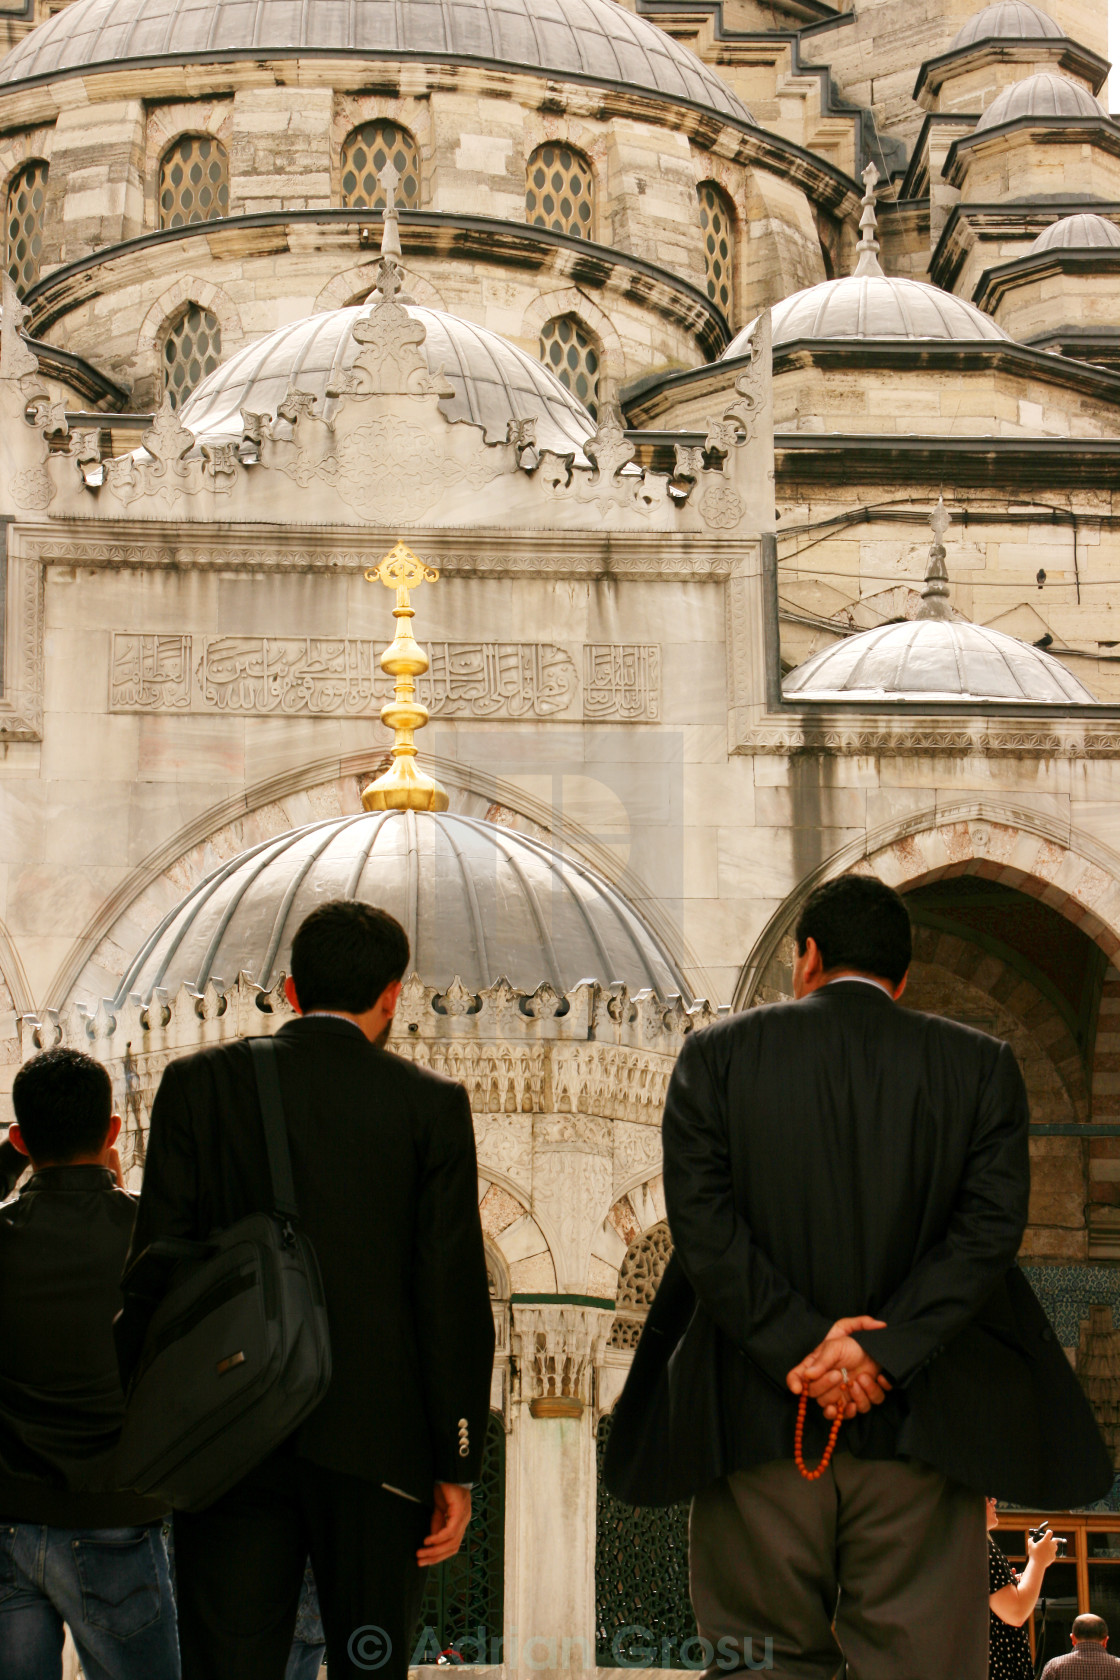 """Three muslims entering Yeni Cami (The New Mosque) in Istanbul, Turkey"" stock image"